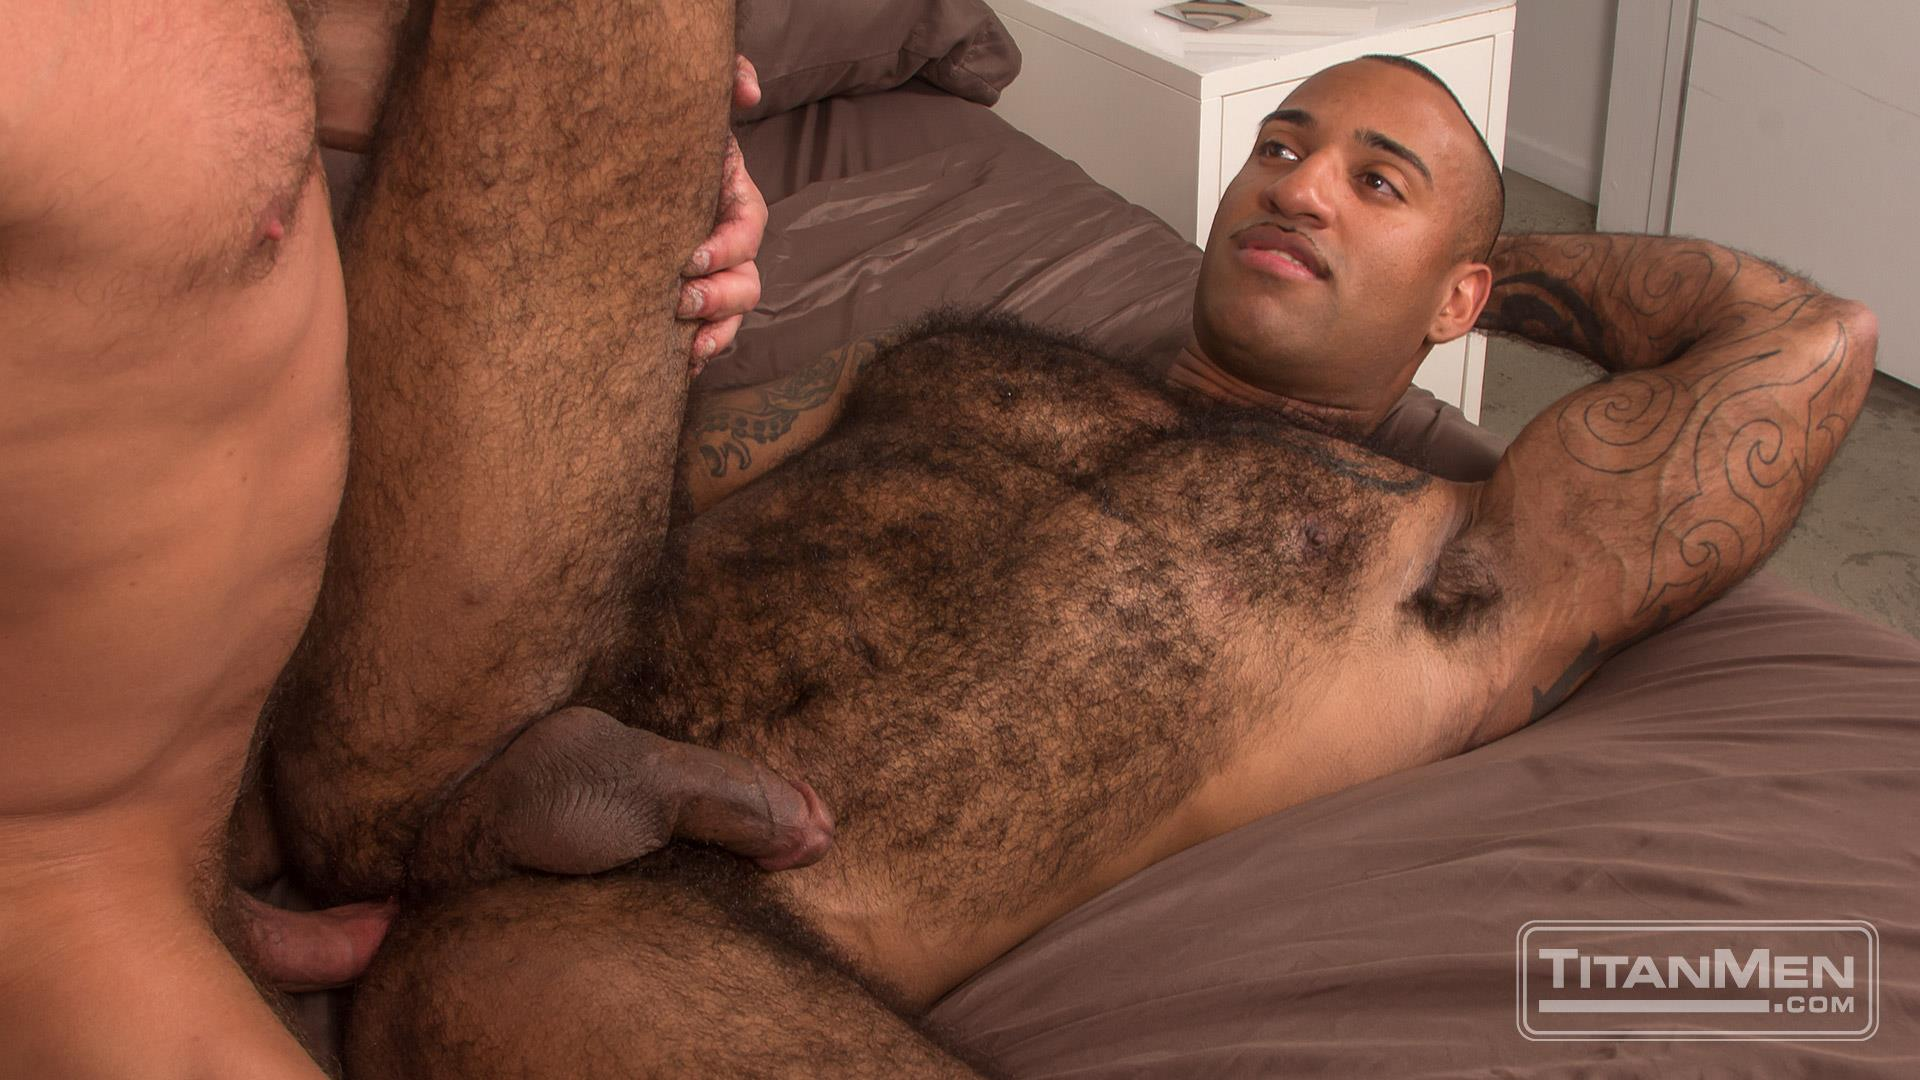 Titan-Men-Dirk-Caber-and-Daymin-Voss-Hairy-Muscle-Daddy-and-Big-Black-Dick-Fucking-53 Hairy Muscle Daddy Dirk Caber Flip Fucking With Hairy Black Muscle Hunk Daymin Voss